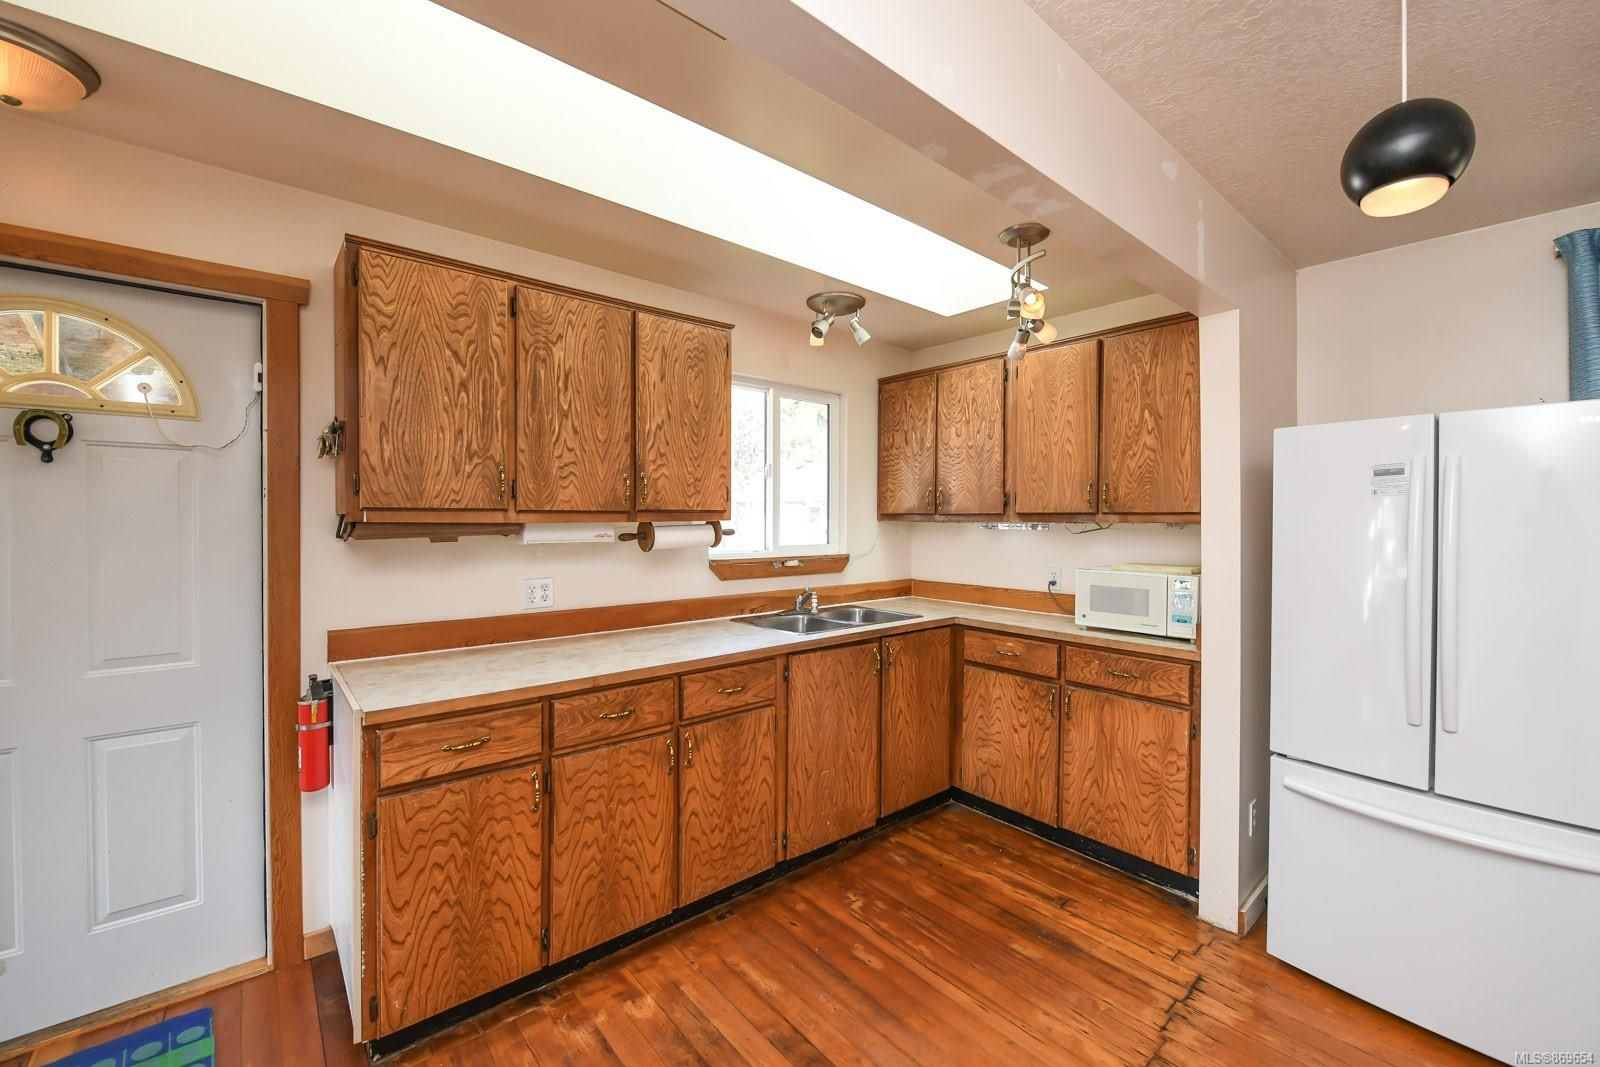 Photo 8: Photos: 4712 Cumberland Rd in : CV Cumberland House for sale (Comox Valley)  : MLS®# 869654